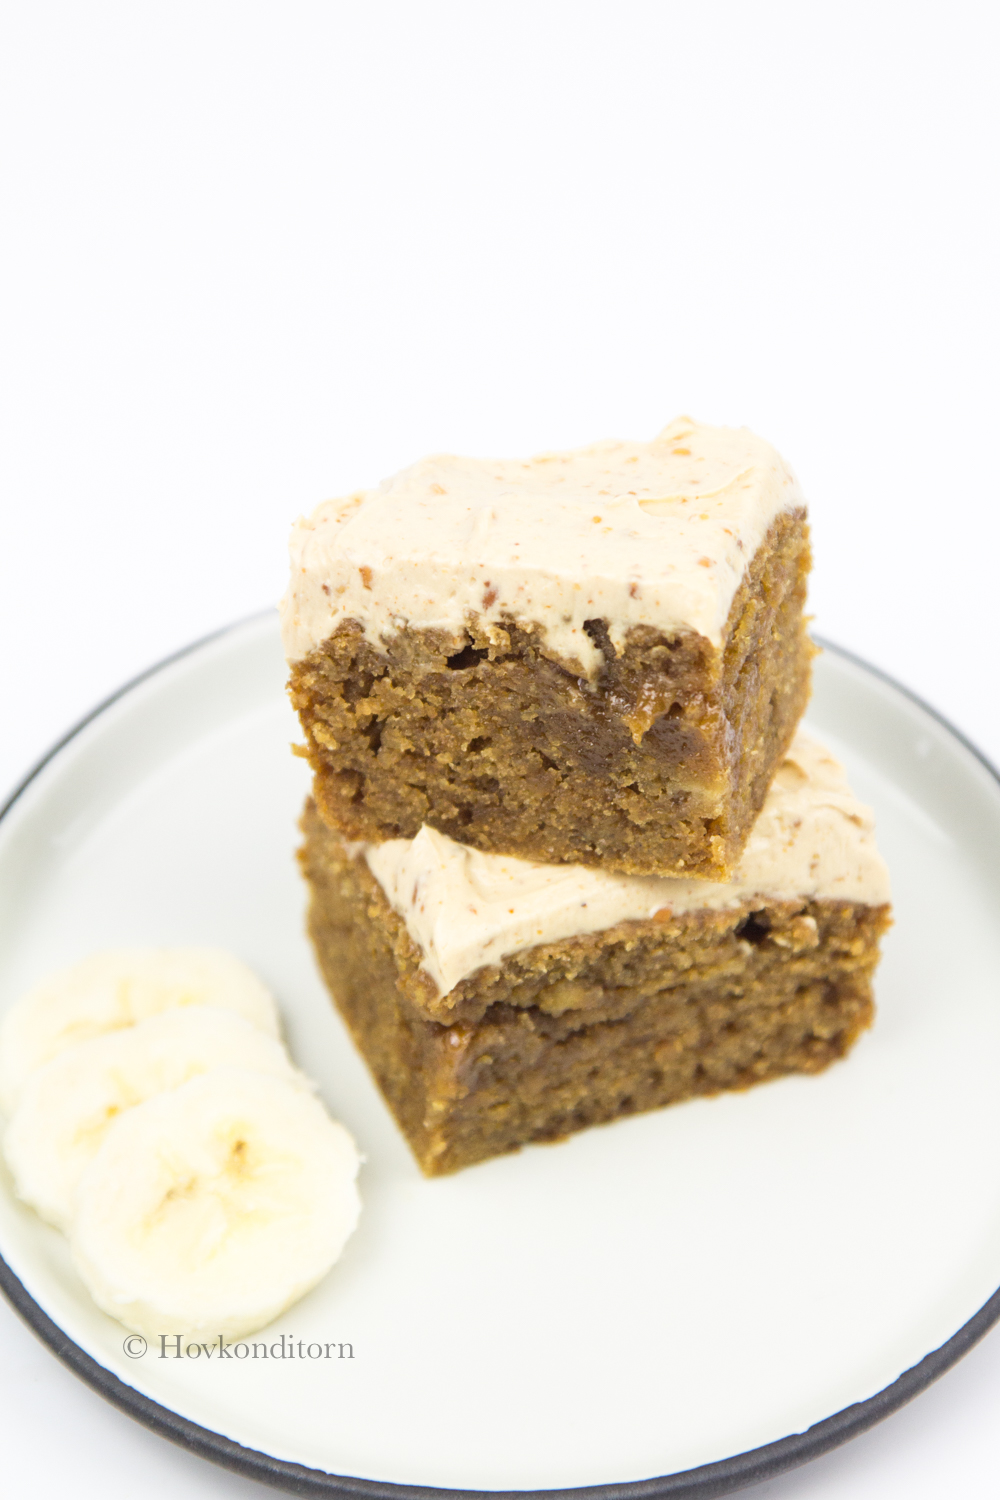 Hovkonditorn: Banana Cake with Peanut Butter Frosting